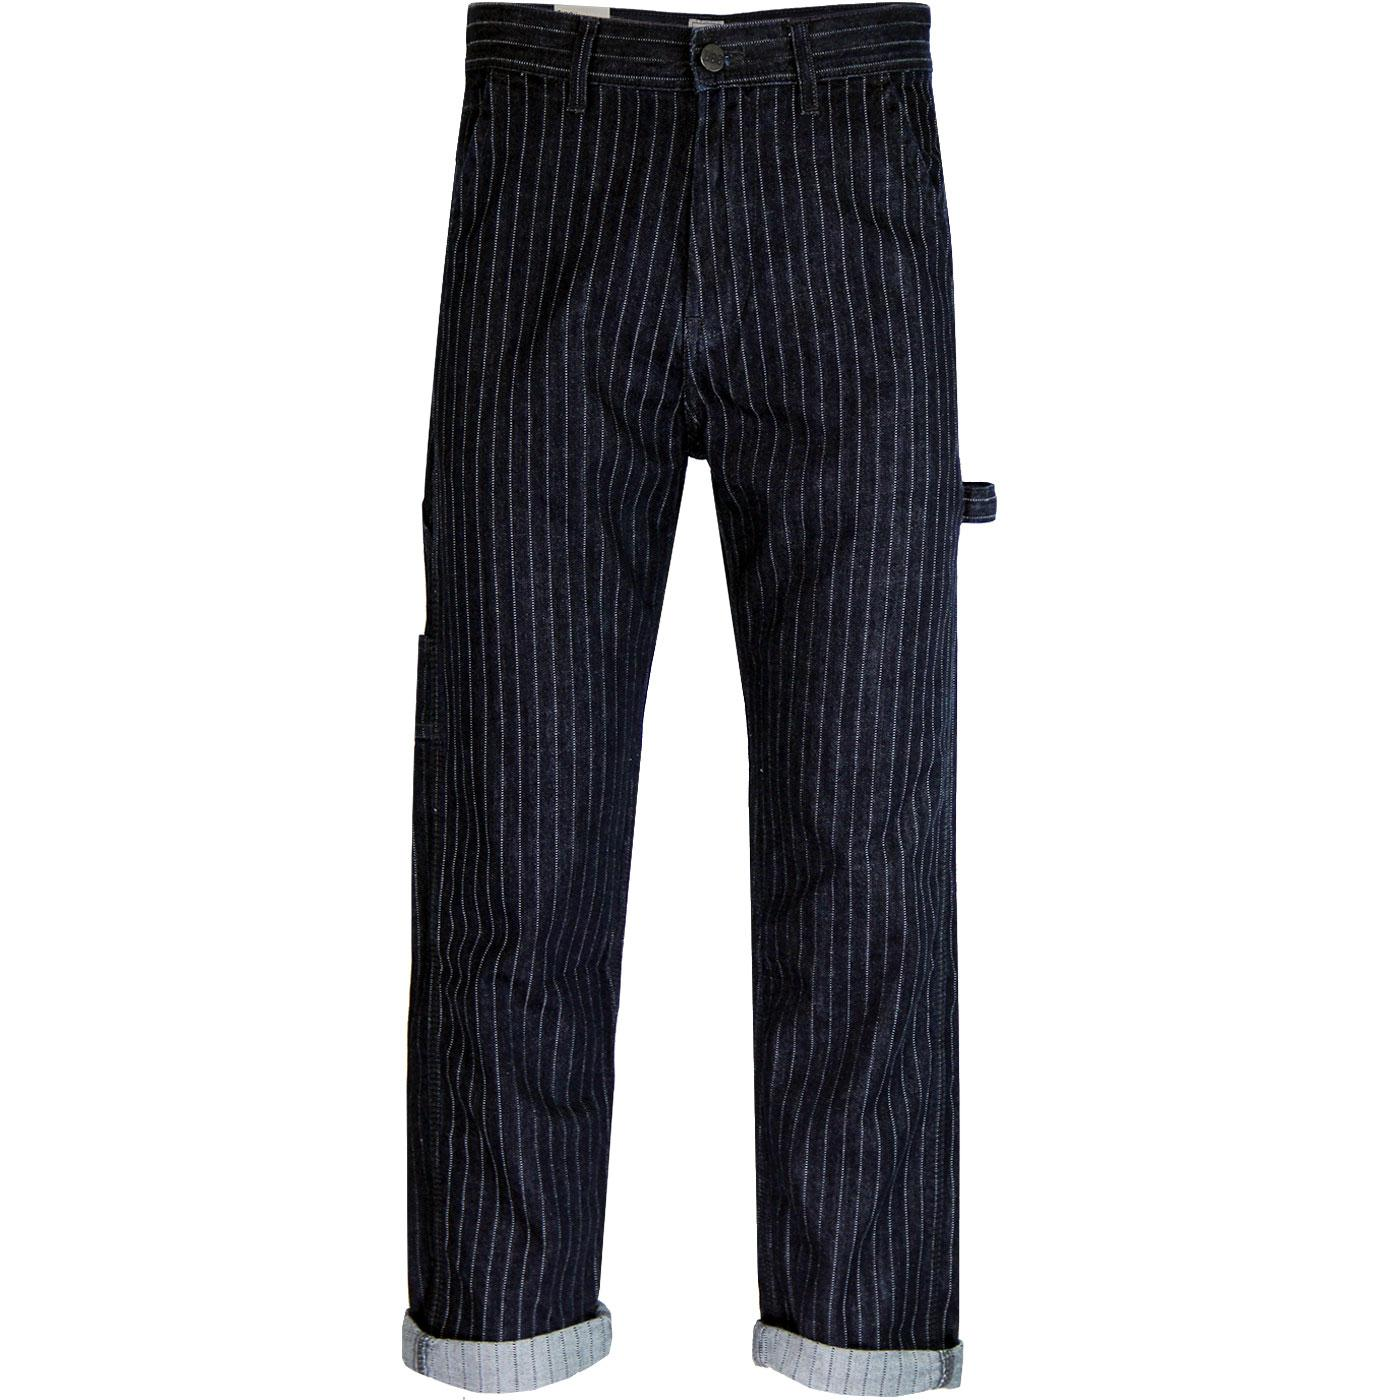 Carpenter LEE Loose & Straight Pinstripe Jeans